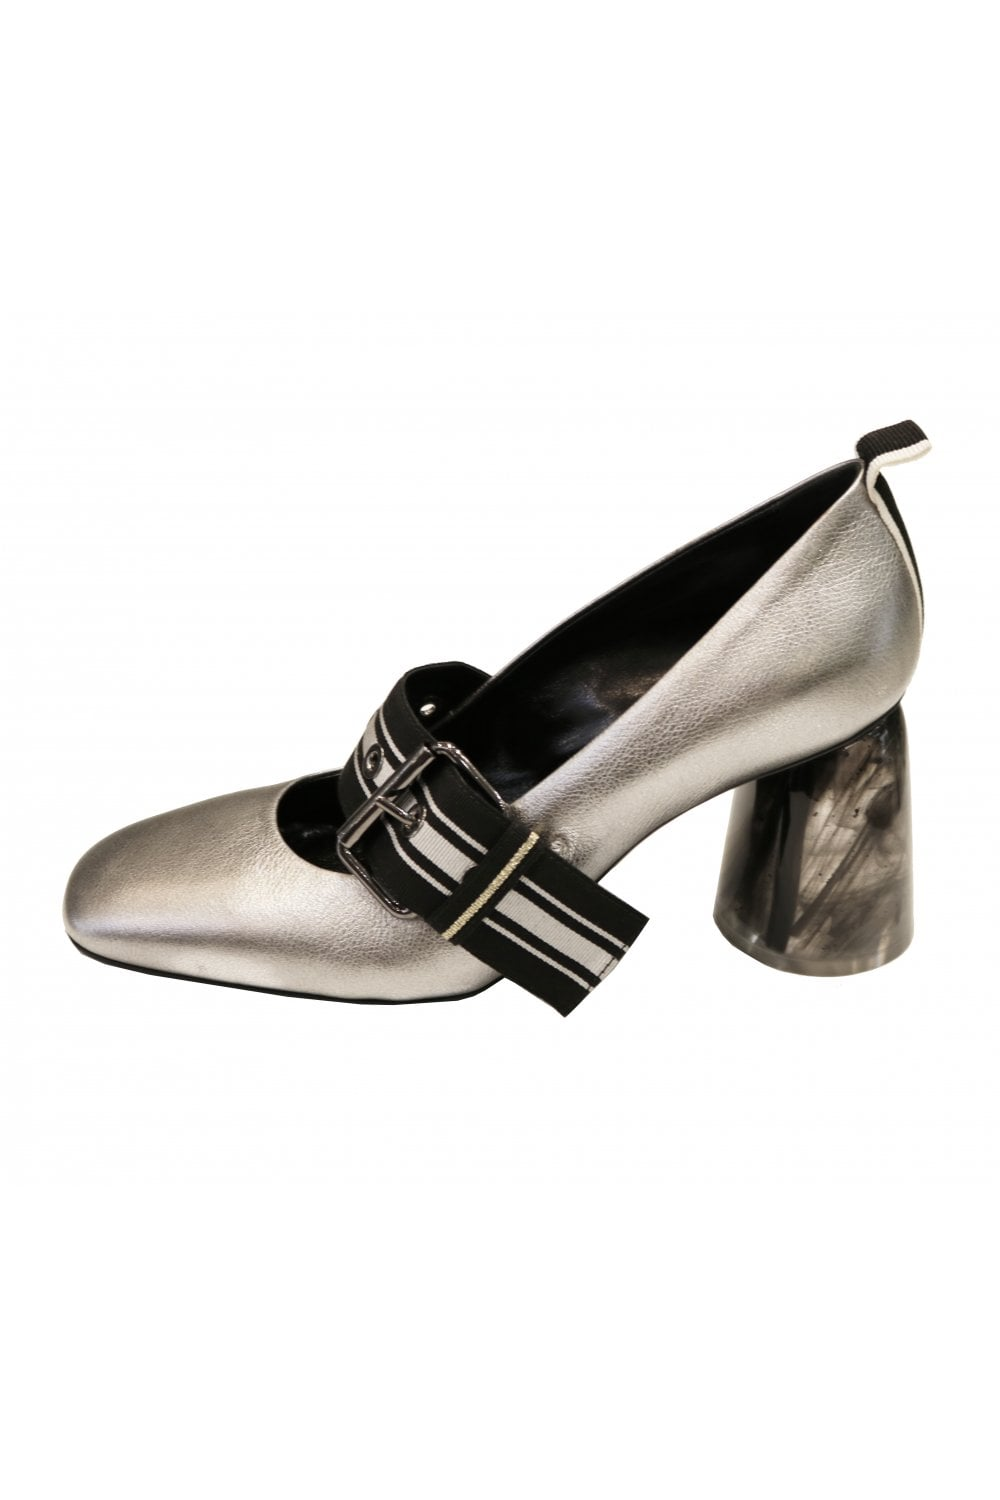 newest 4fa0d 6f683 Women's 1658 Mary Janes with Resin Block Heel in Silver